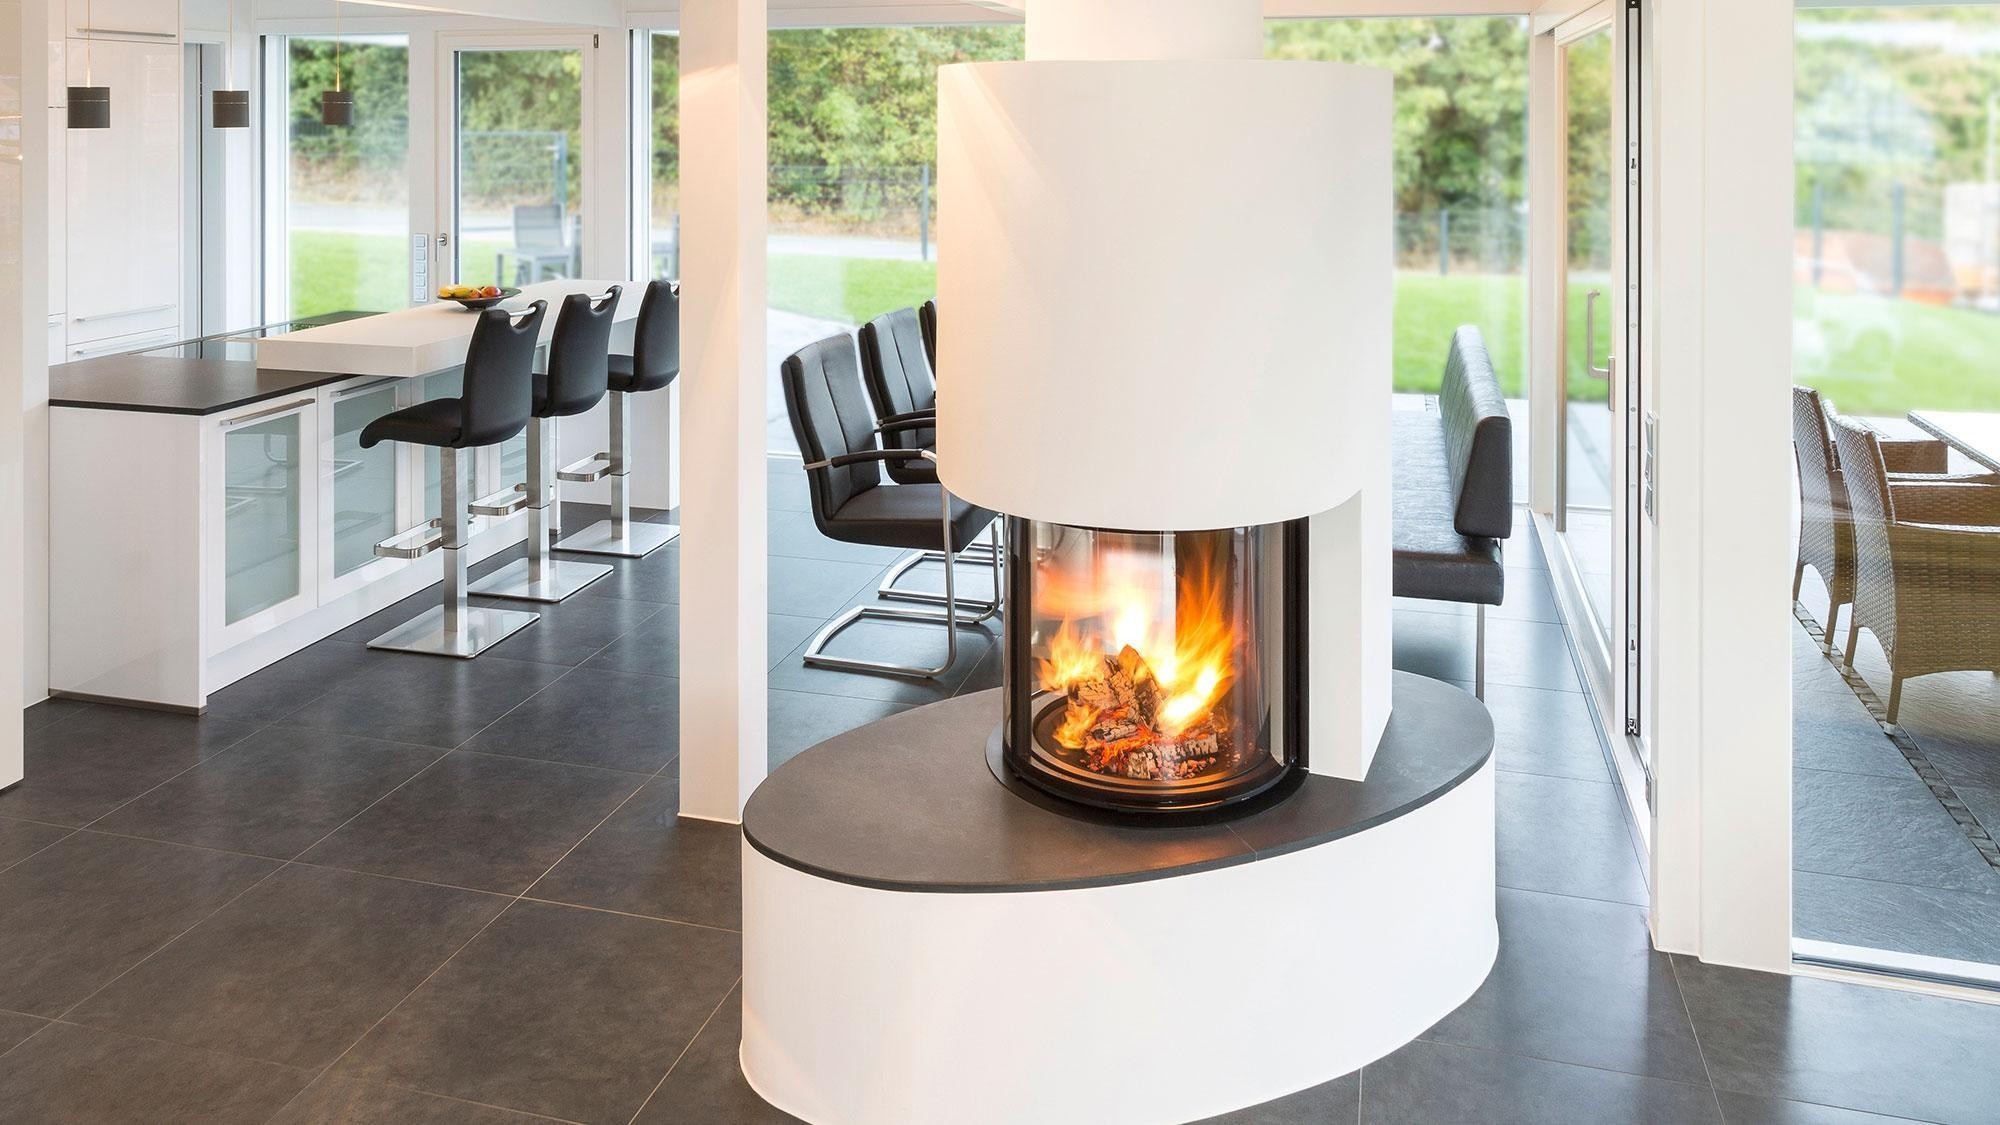 Fireplaces Cheminee Kamin Ofen